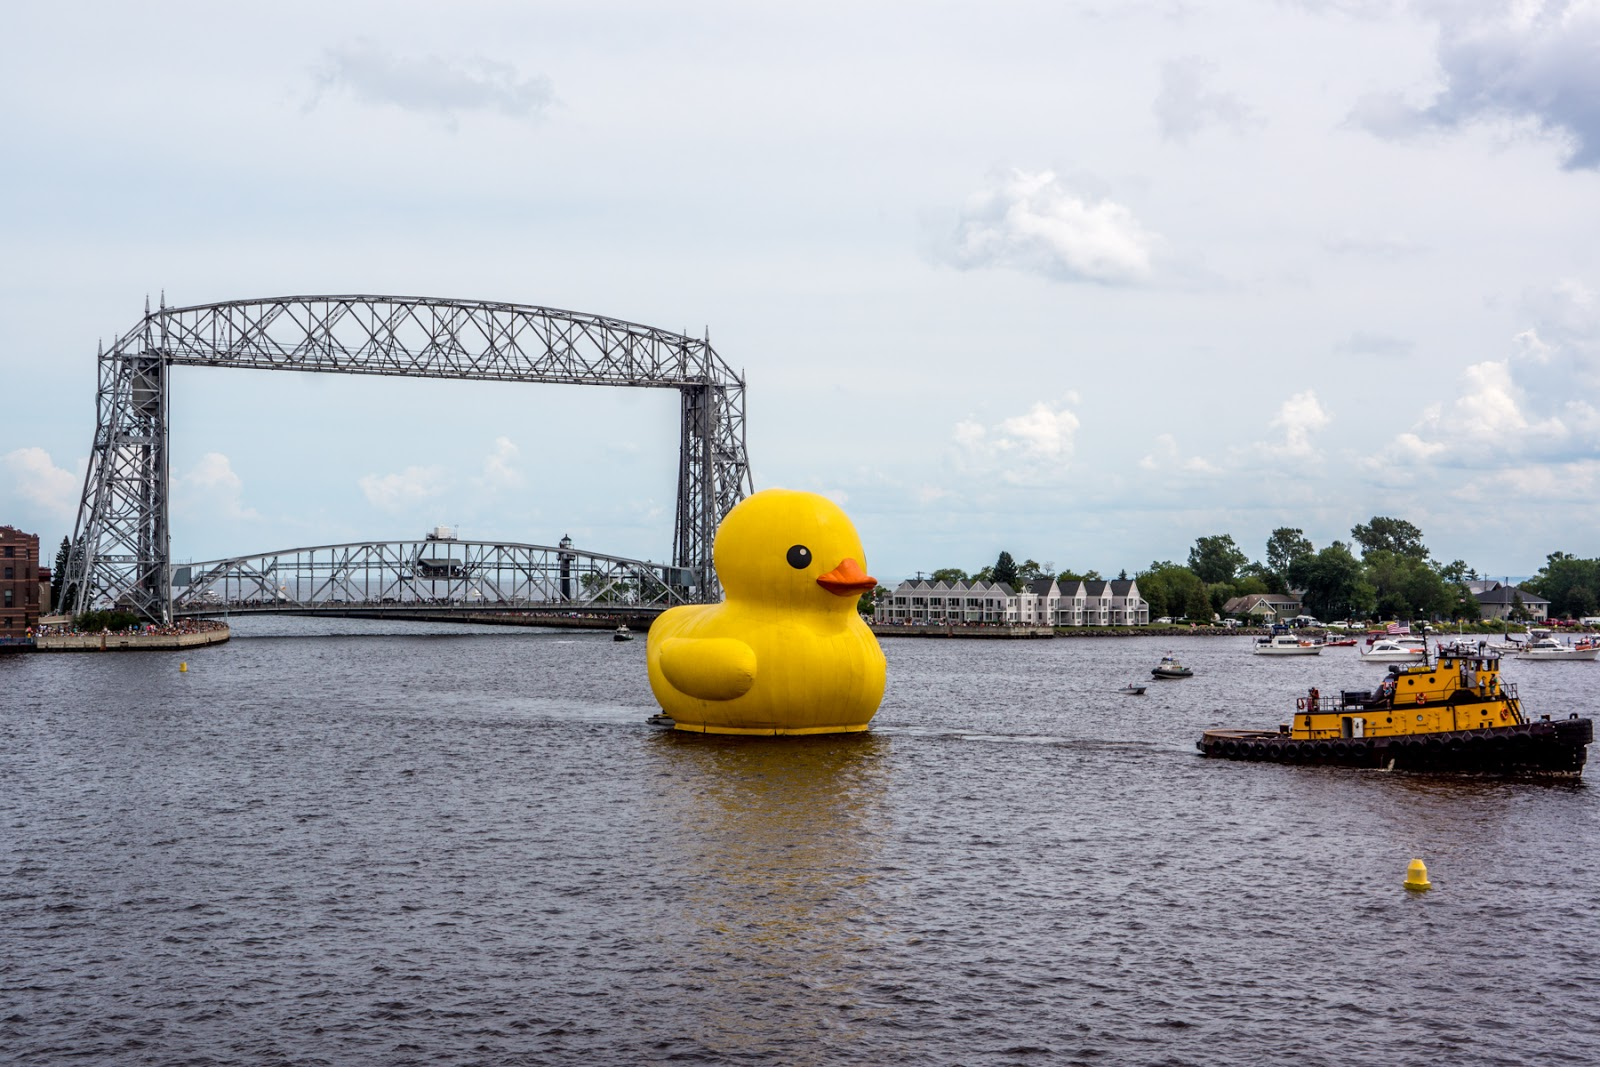 Duluth Harbor Cam: A Rubber Ducky made for a Big Lake!